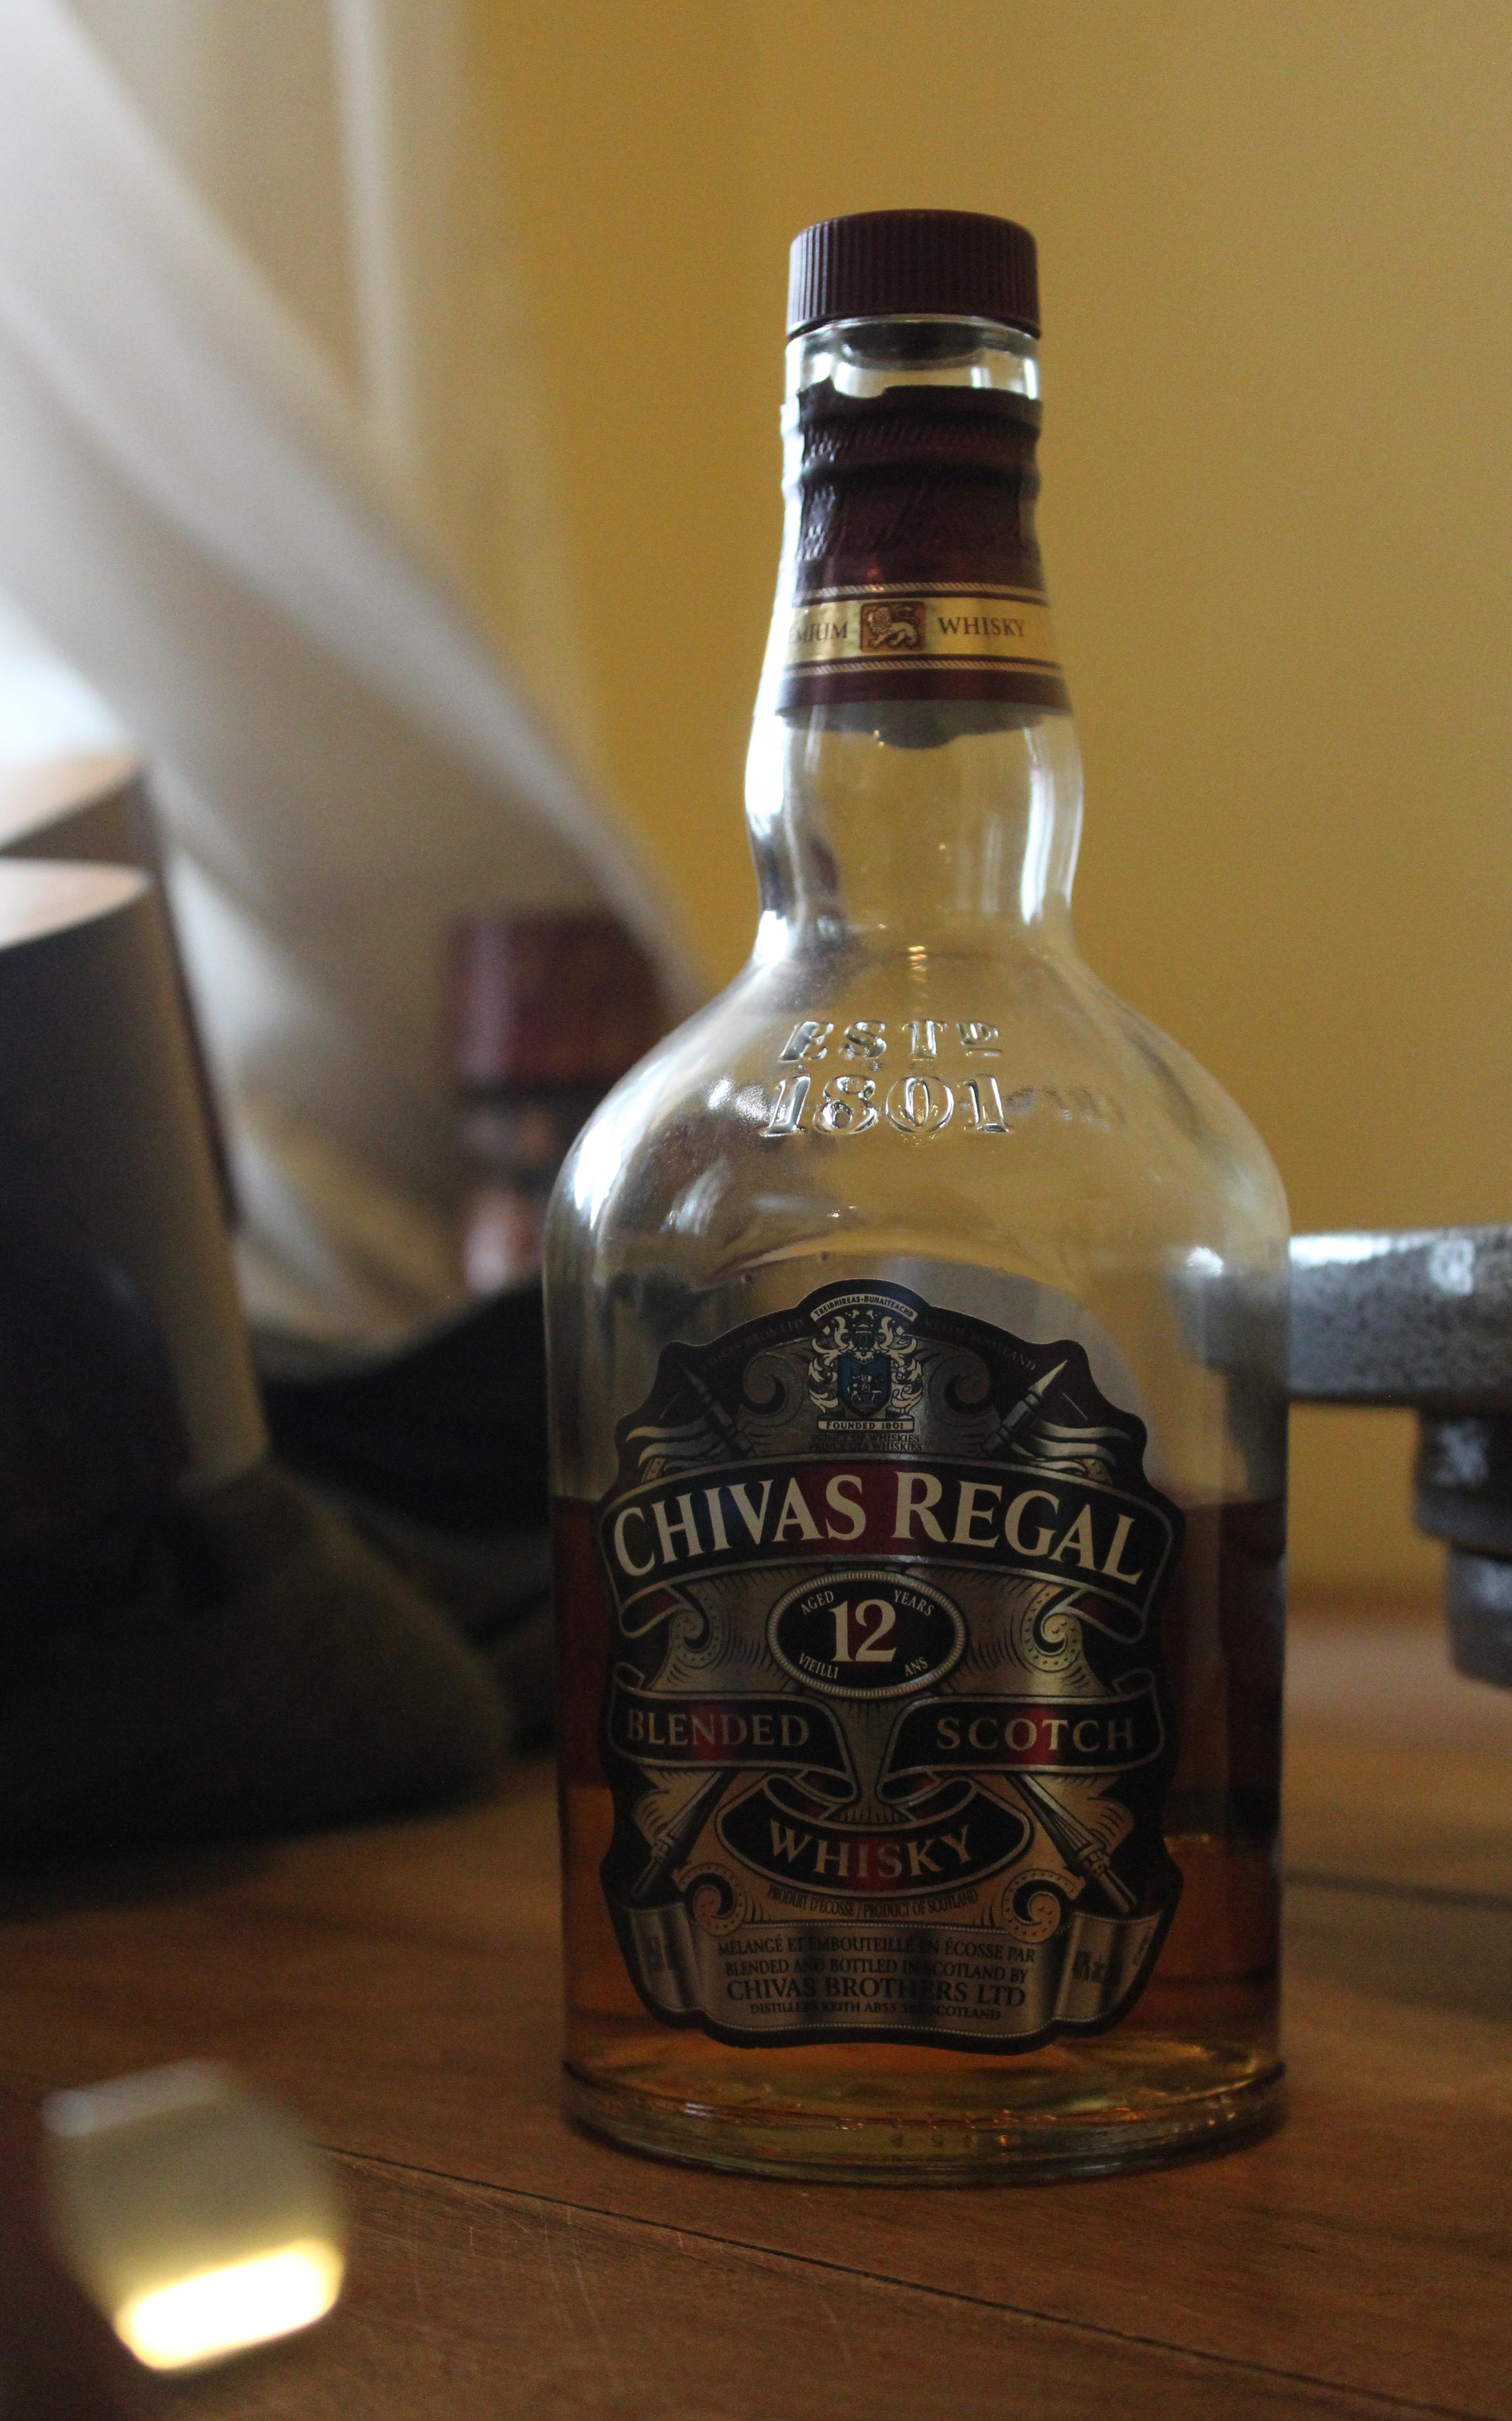 Chivas Regal 12y Blended Scotch Whisky with Dan & Ryan